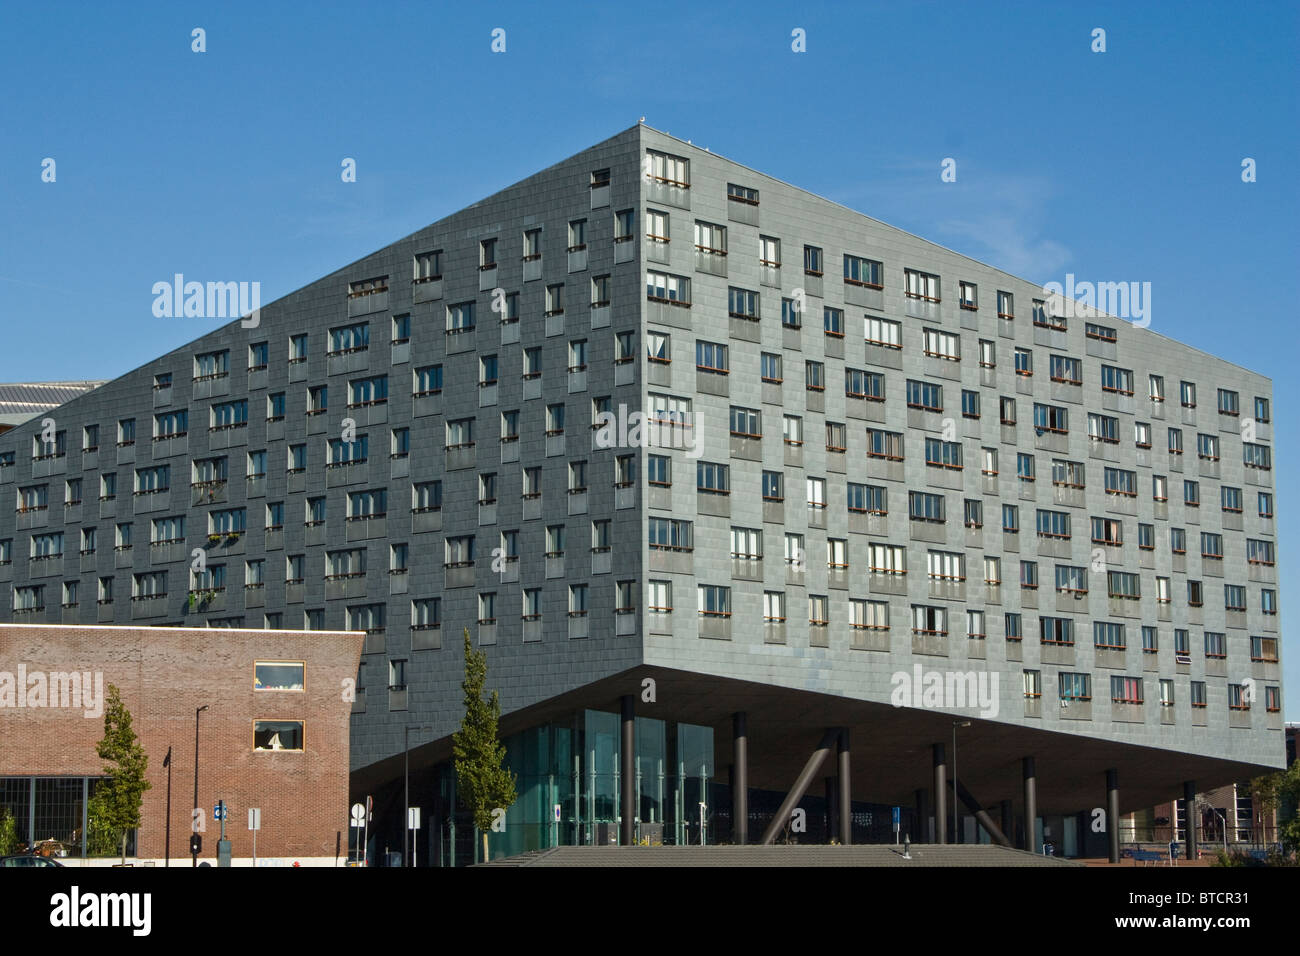 Sfinx or Whale by Frits van Dongen, modern architecture in Amsterdam, Sporenburg, Eastern Harbour Docklands, Stock Photo